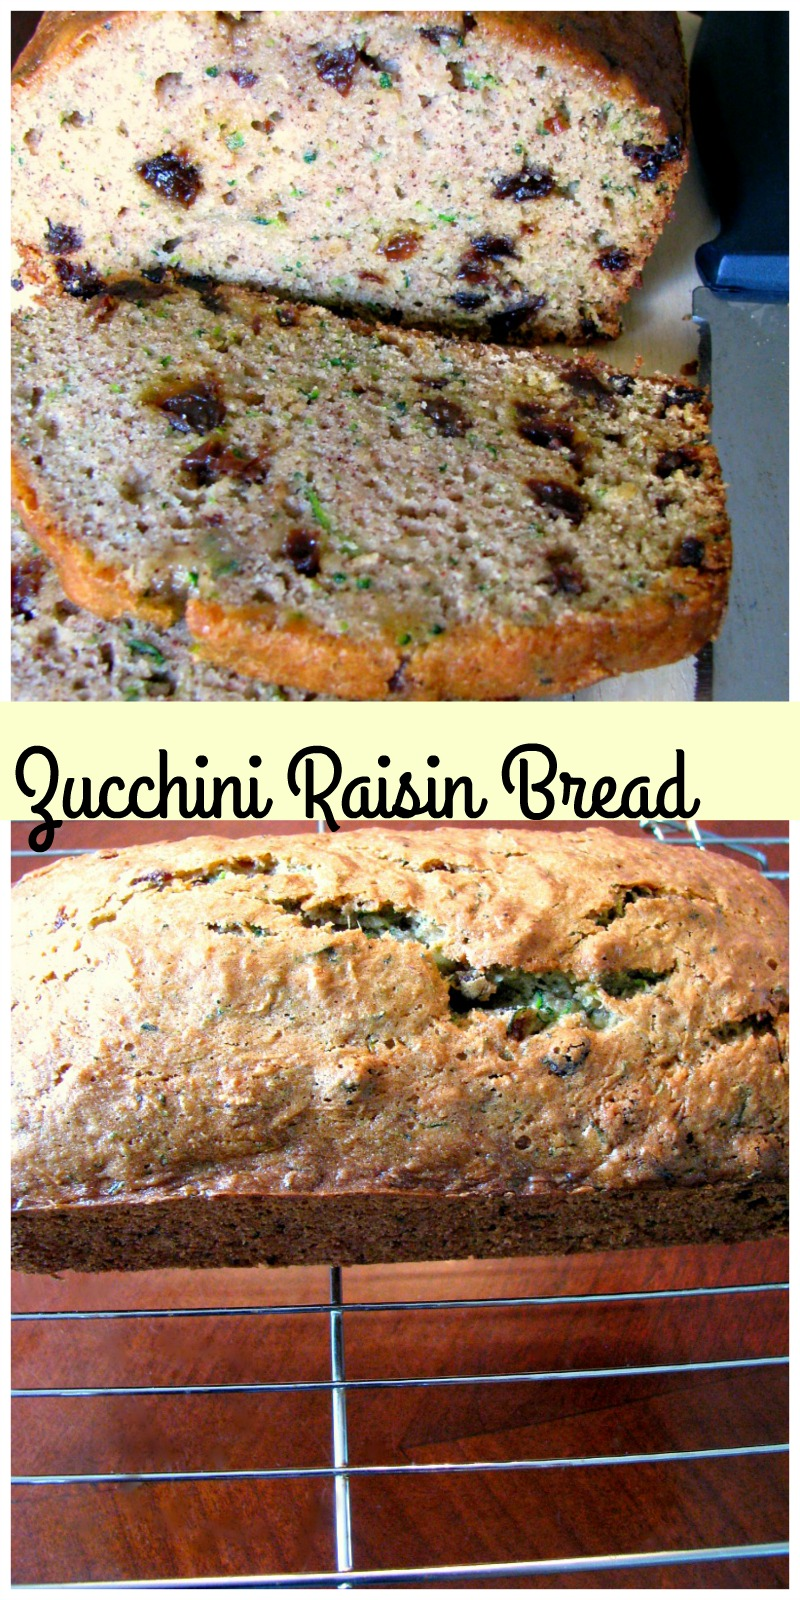 Sweet, delicious zucchini bread made with raisins and nut-free.